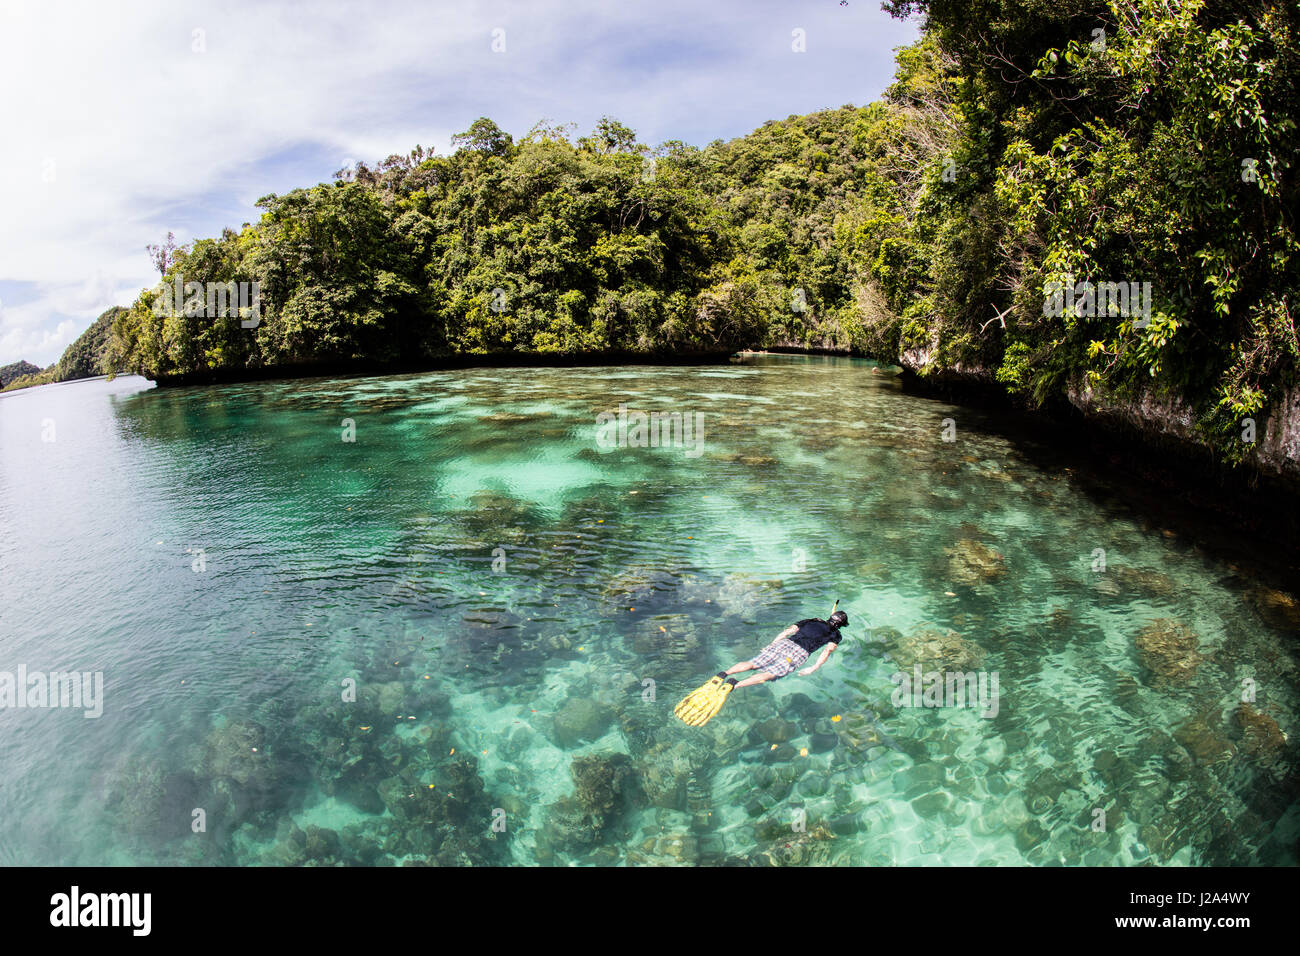 A snorkeler explores a shallow coral reef growing along the edge of a limestone island in the Republic of Palau. - Stock Image